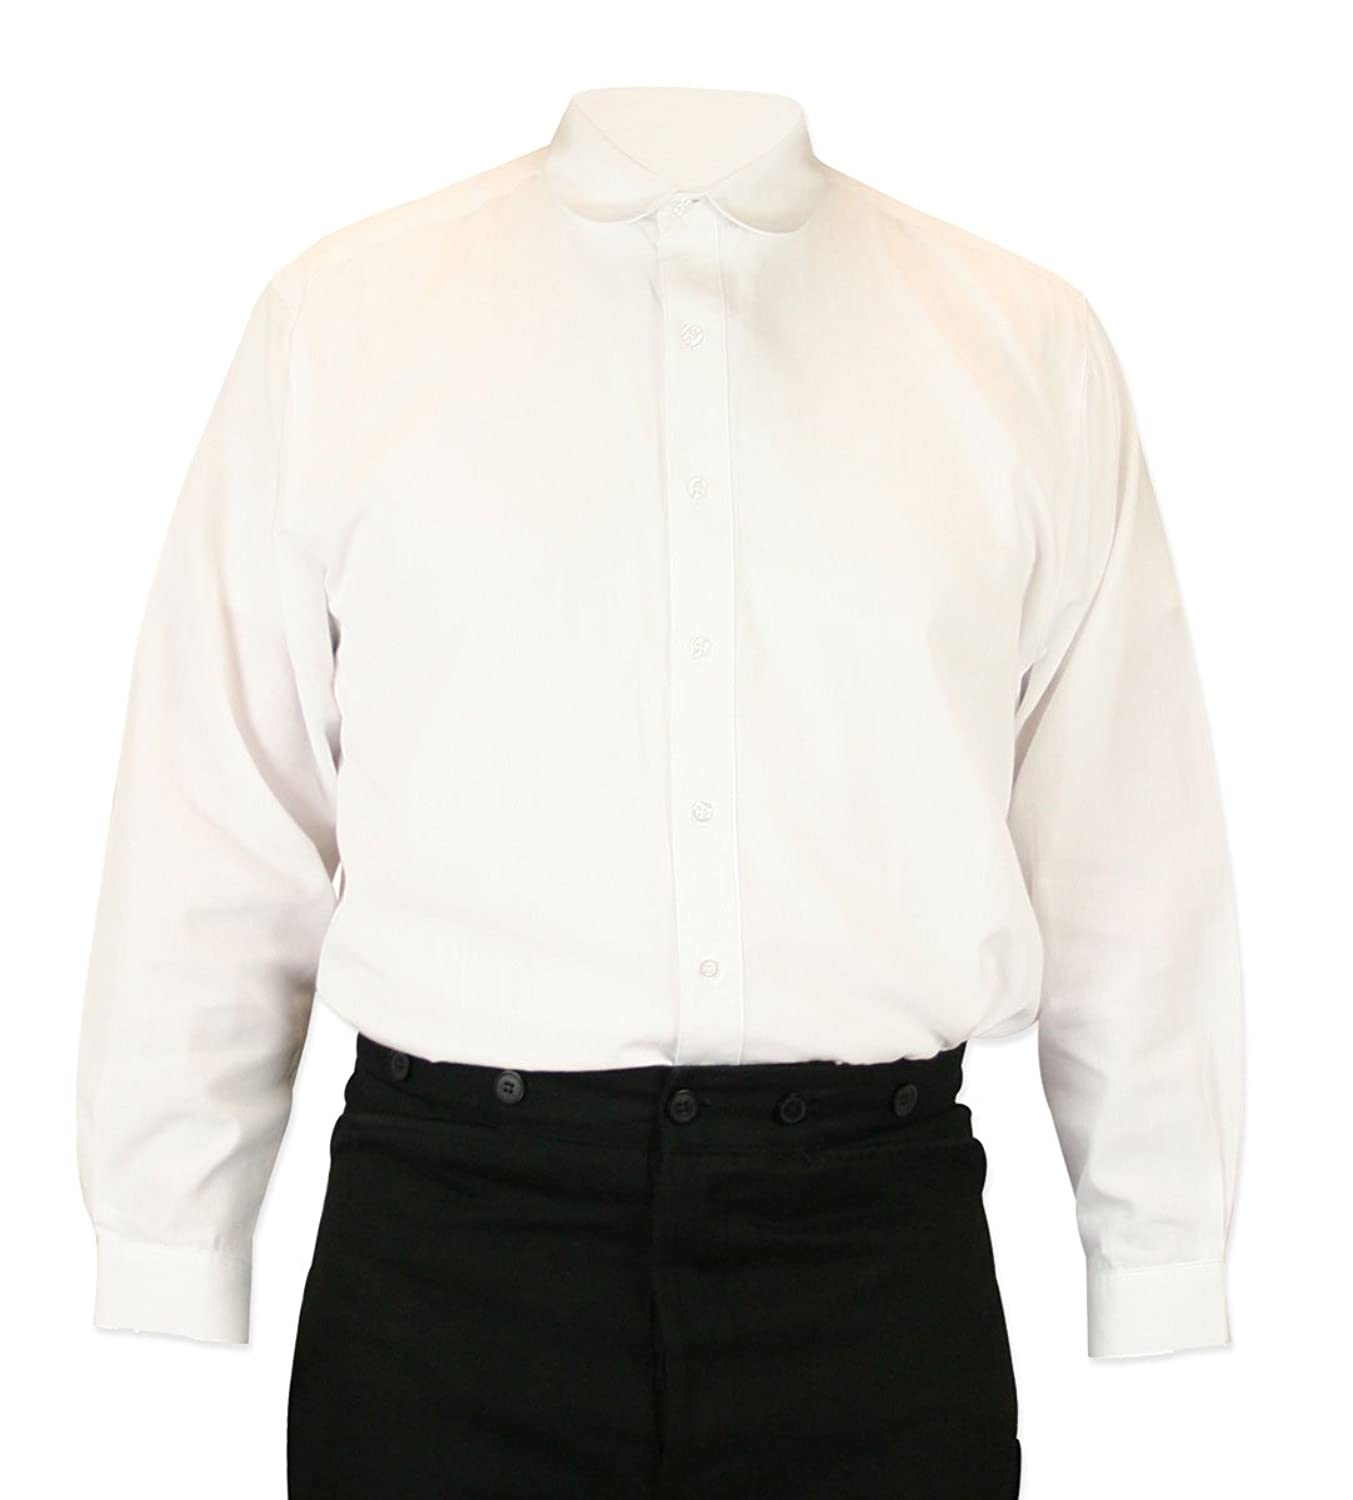 1920s Style Mens Shirts | Peaky Blinders Shirts and Collars Virgil Club Collar Dress Shirt $59.95 AT vintagedancer.com